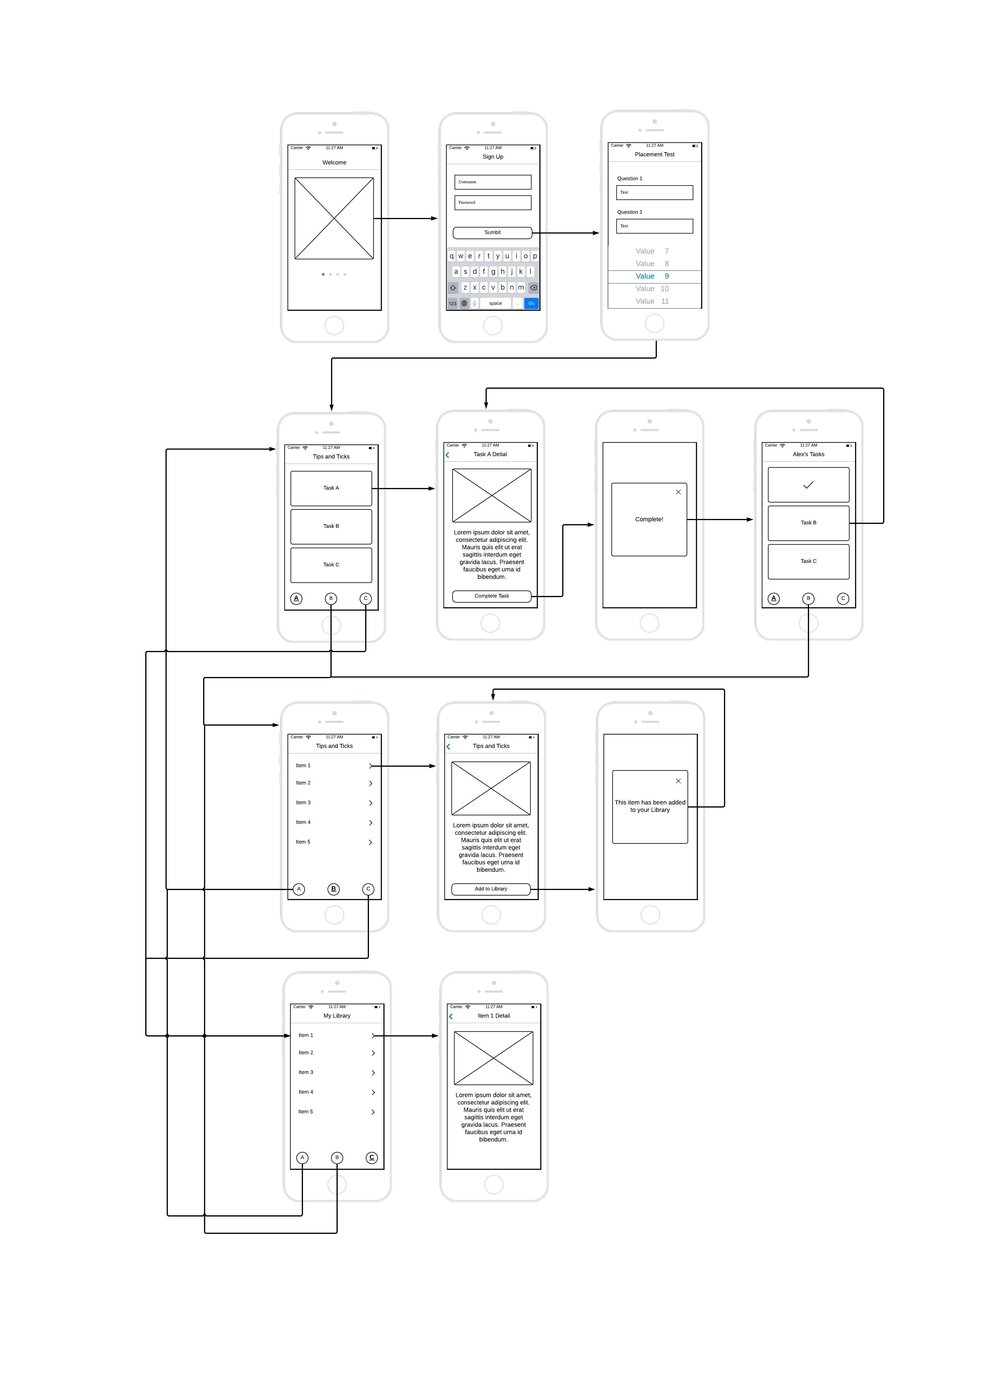 Blank Wireframe copy.jpeg